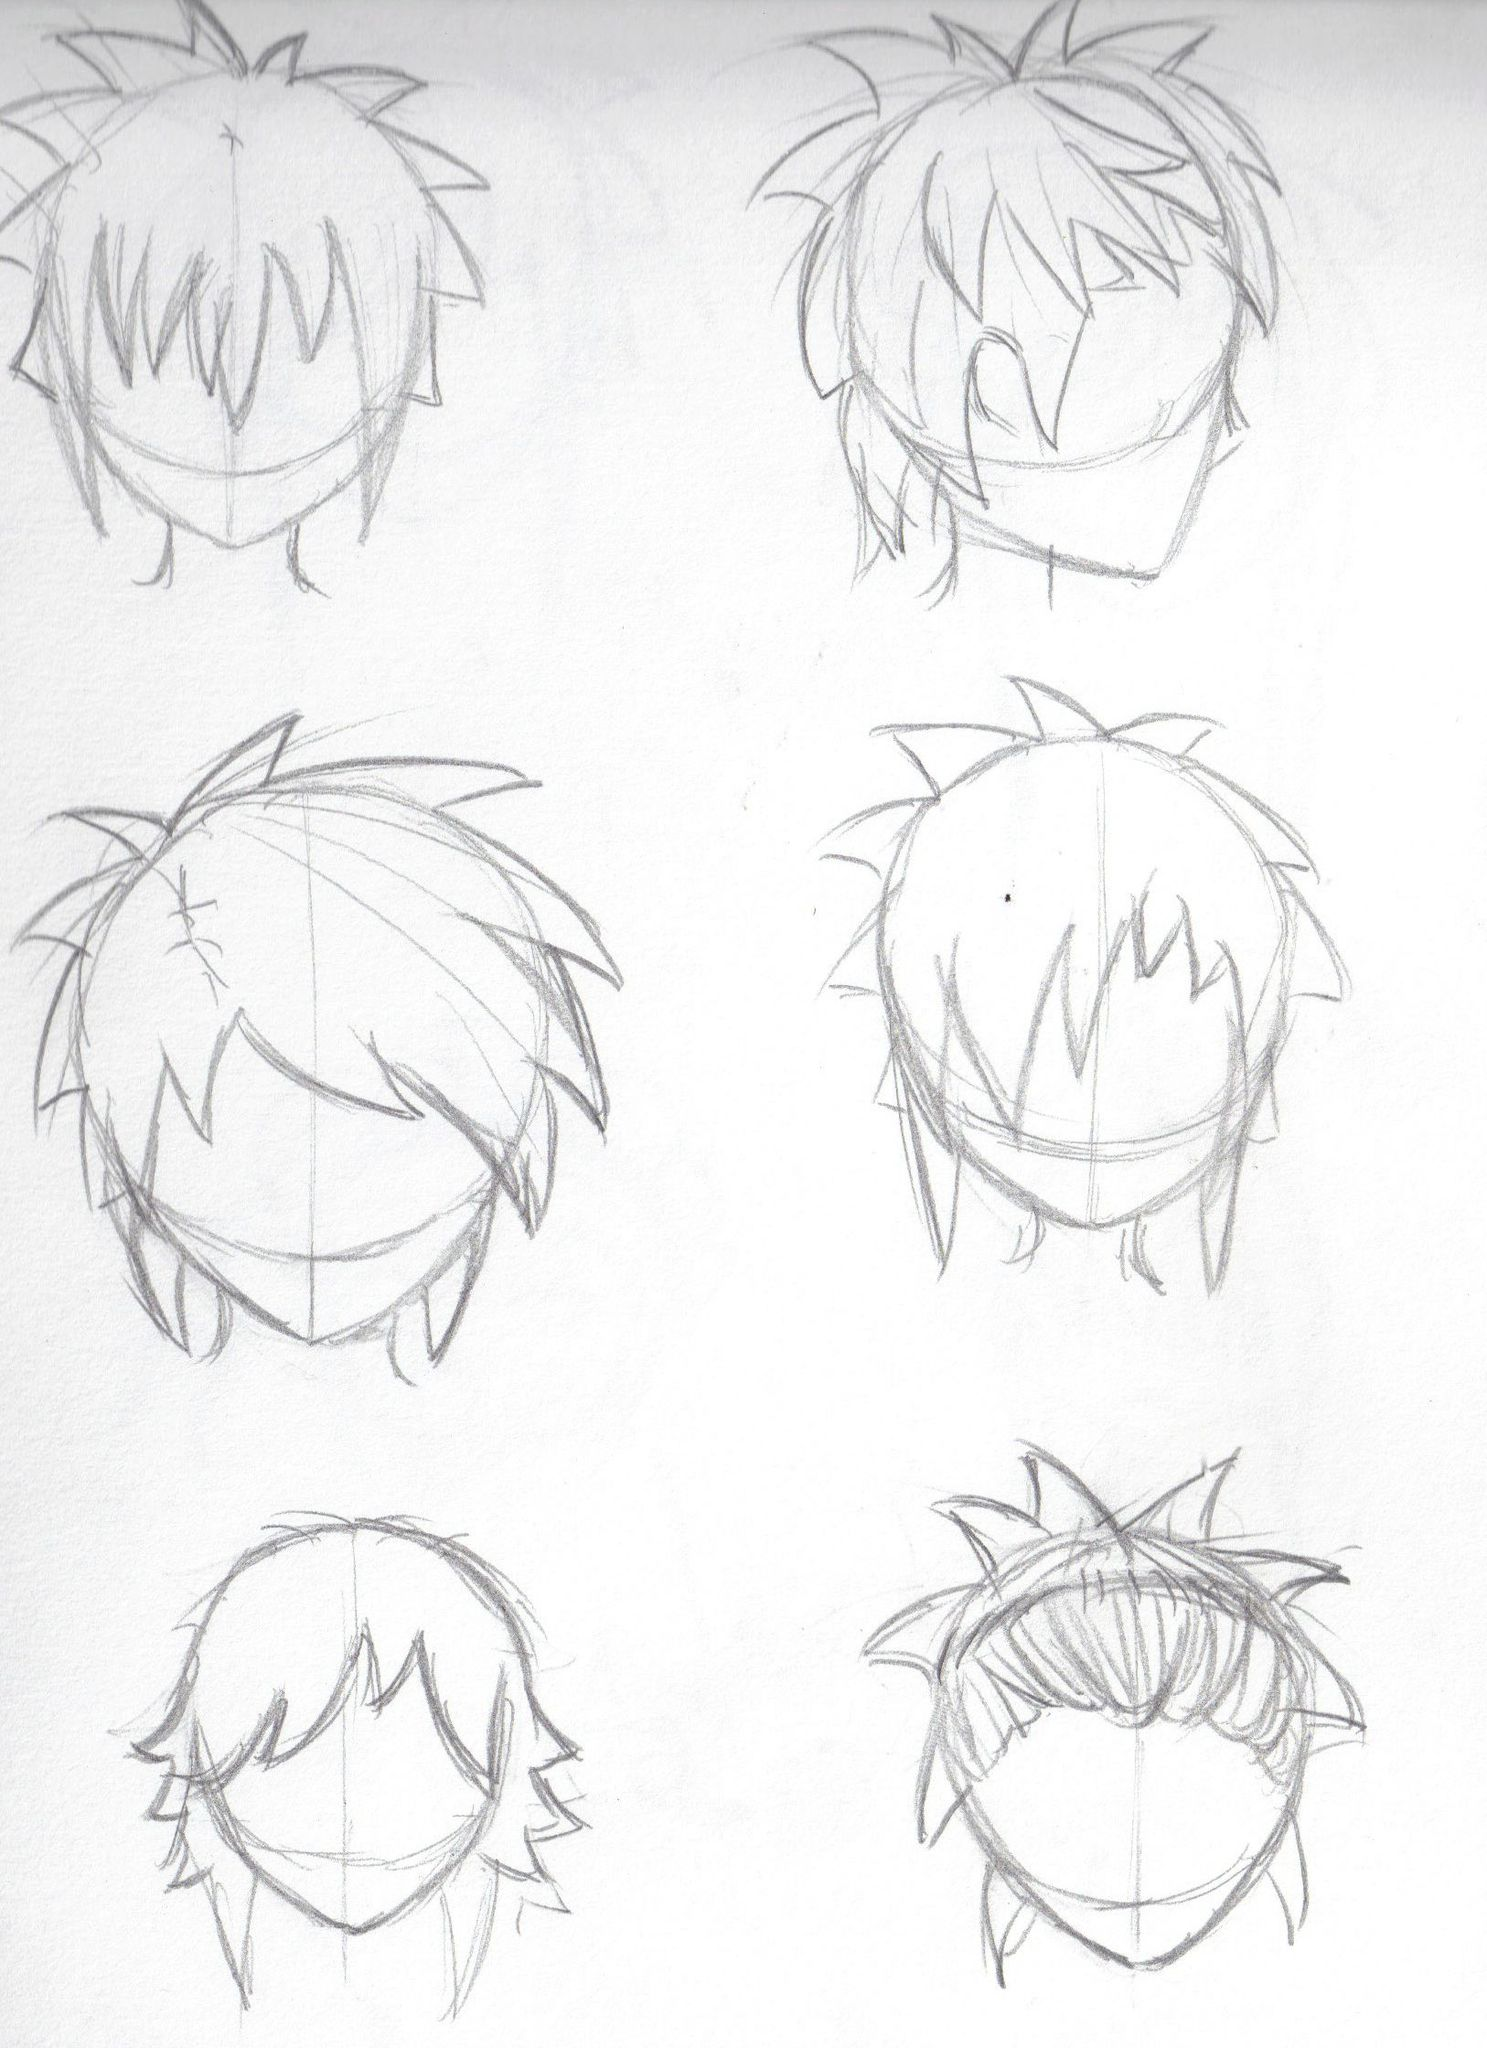 Coupe de cheveux manga fille michele pfeifer blog for Dessin de coupe de cheveux homme